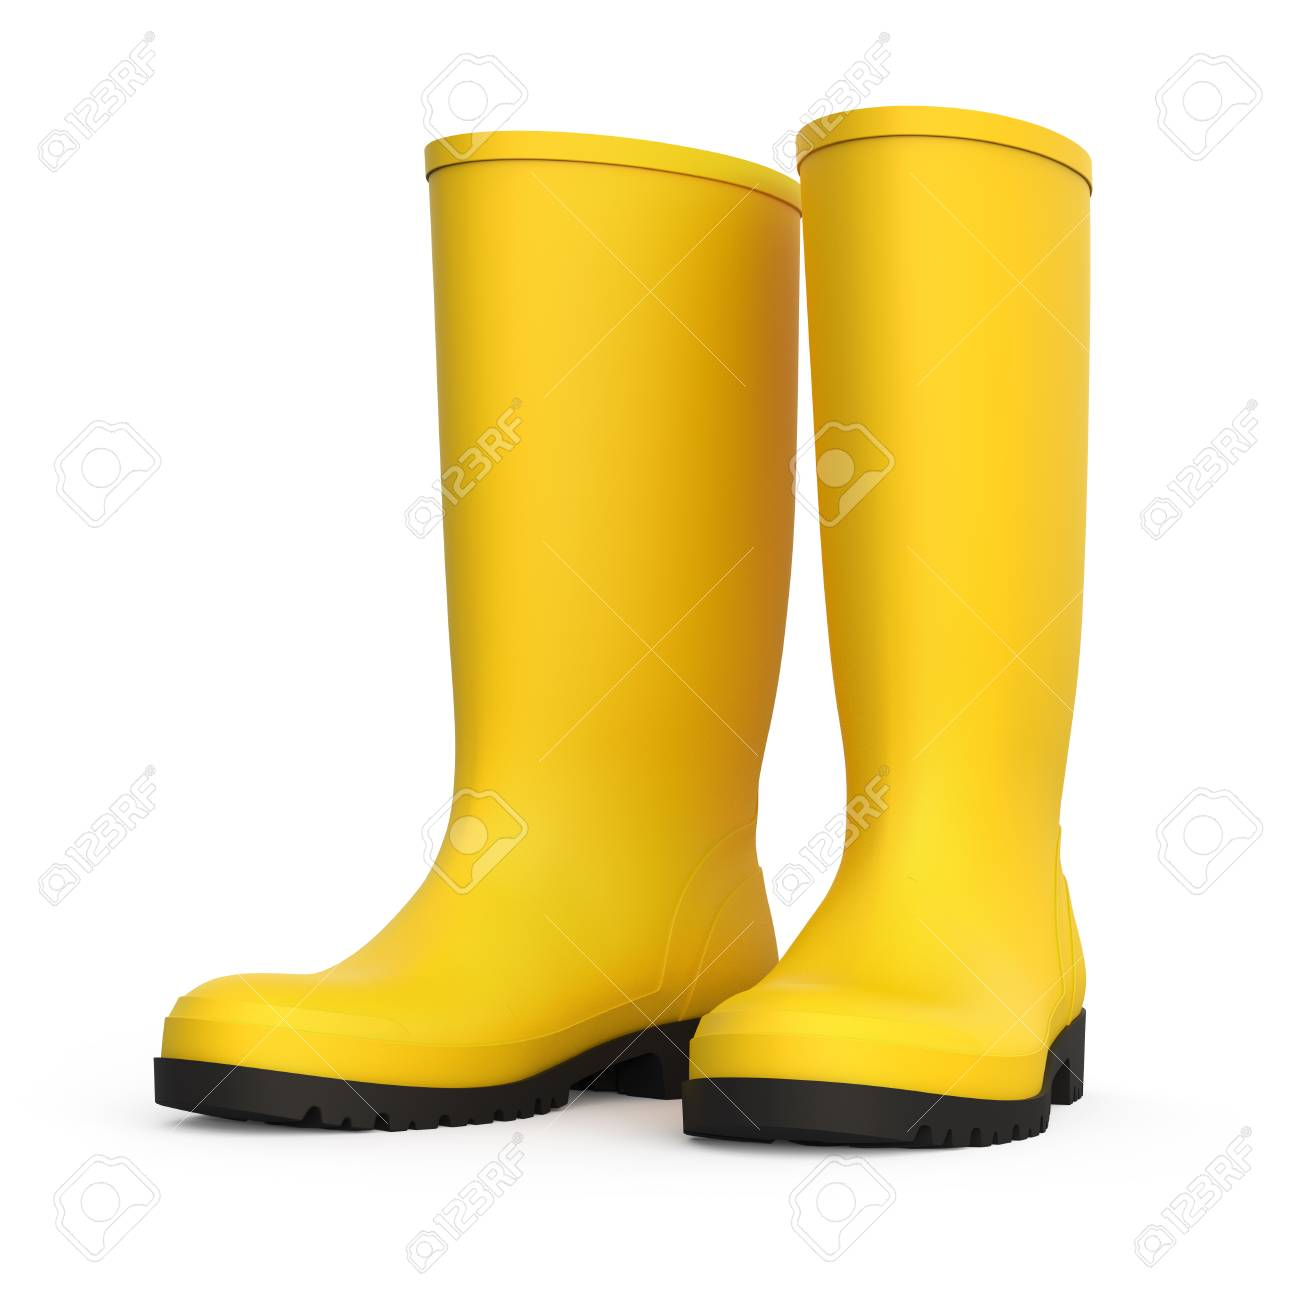 245cc0f9585ff A pair of yellow rain boots isolated on white background 3D rendering Stock  Photo - 95093498